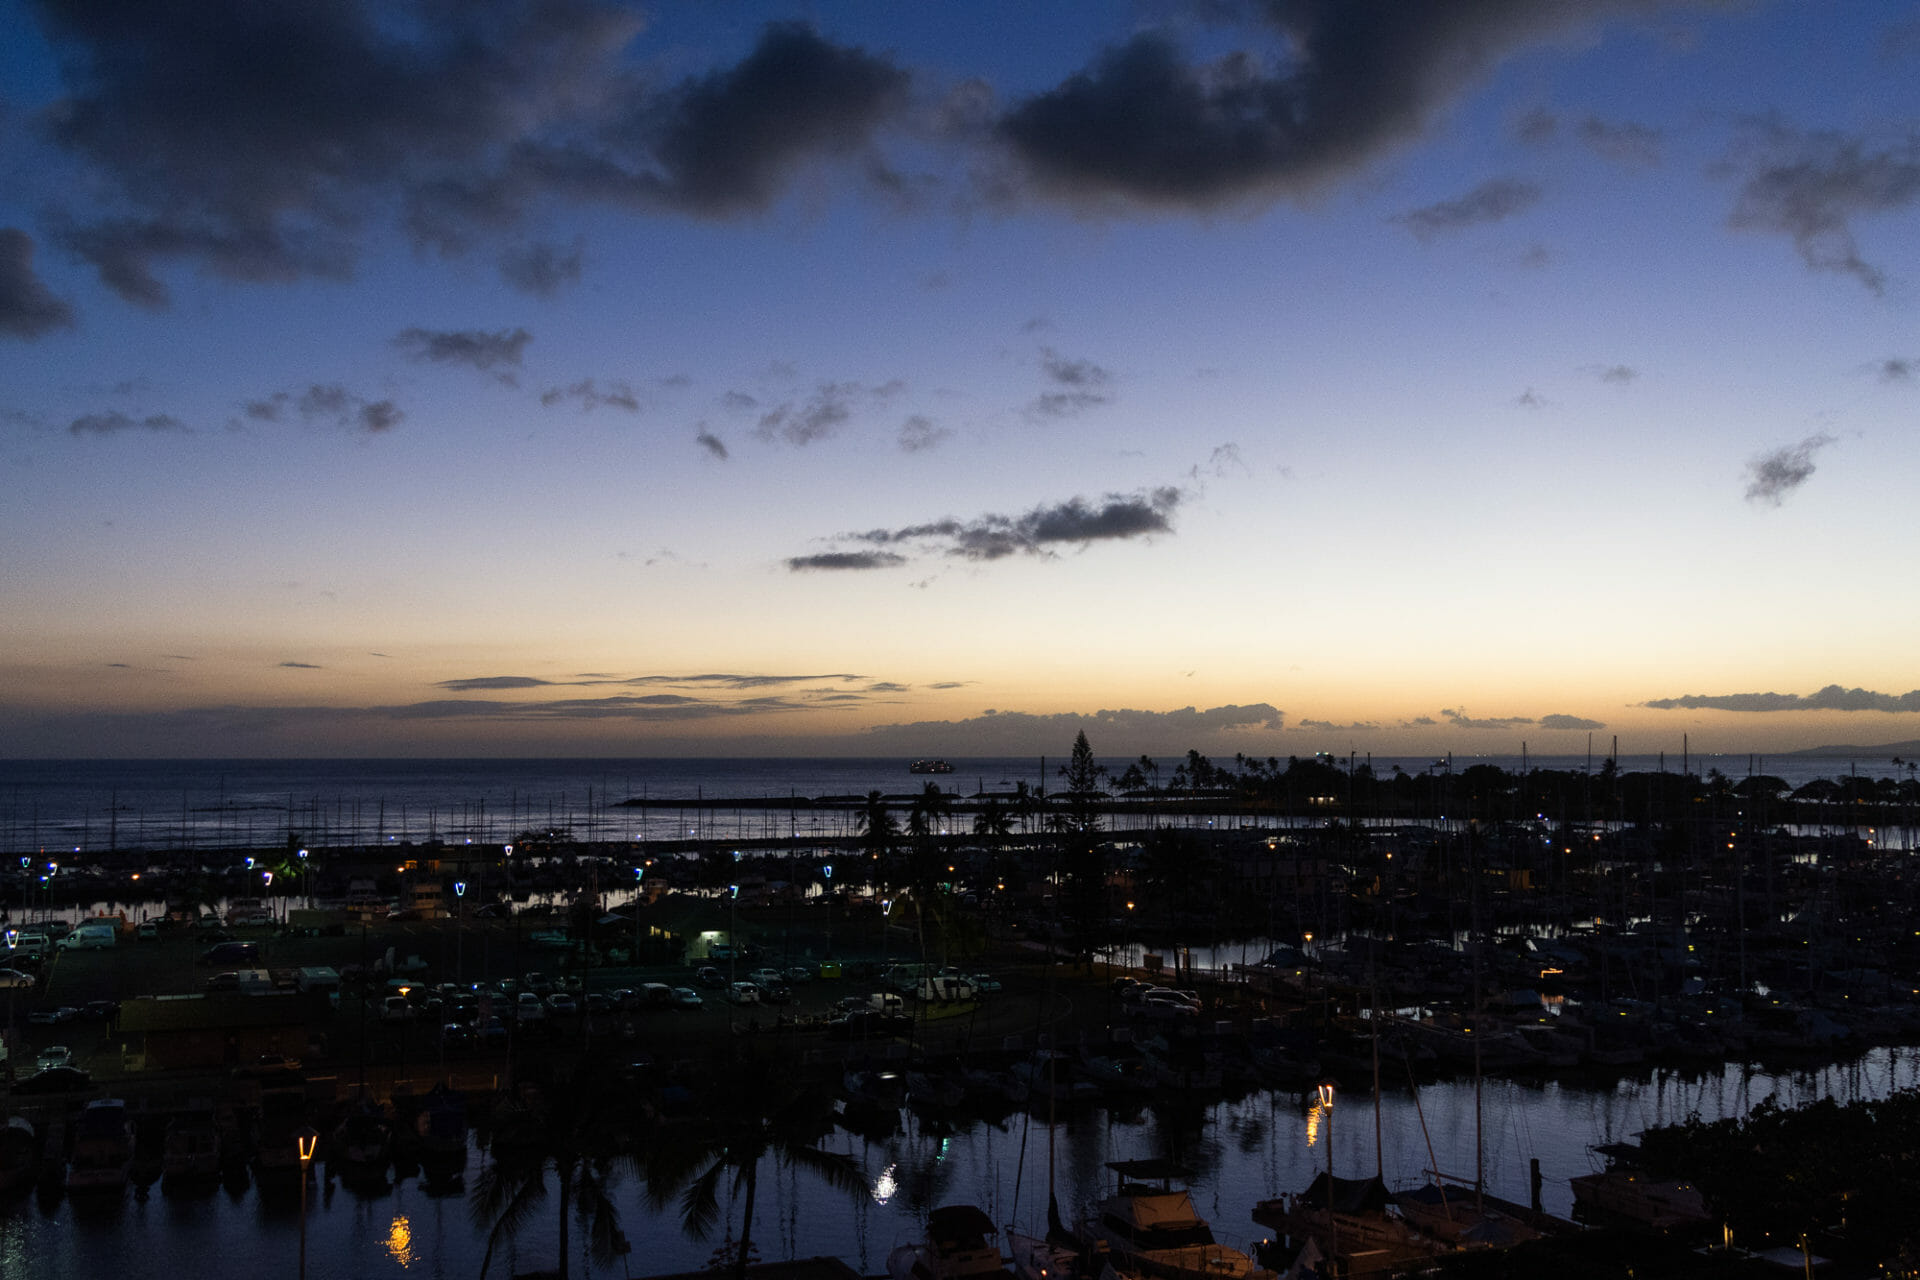 Ala Wai Harbor with sunset past